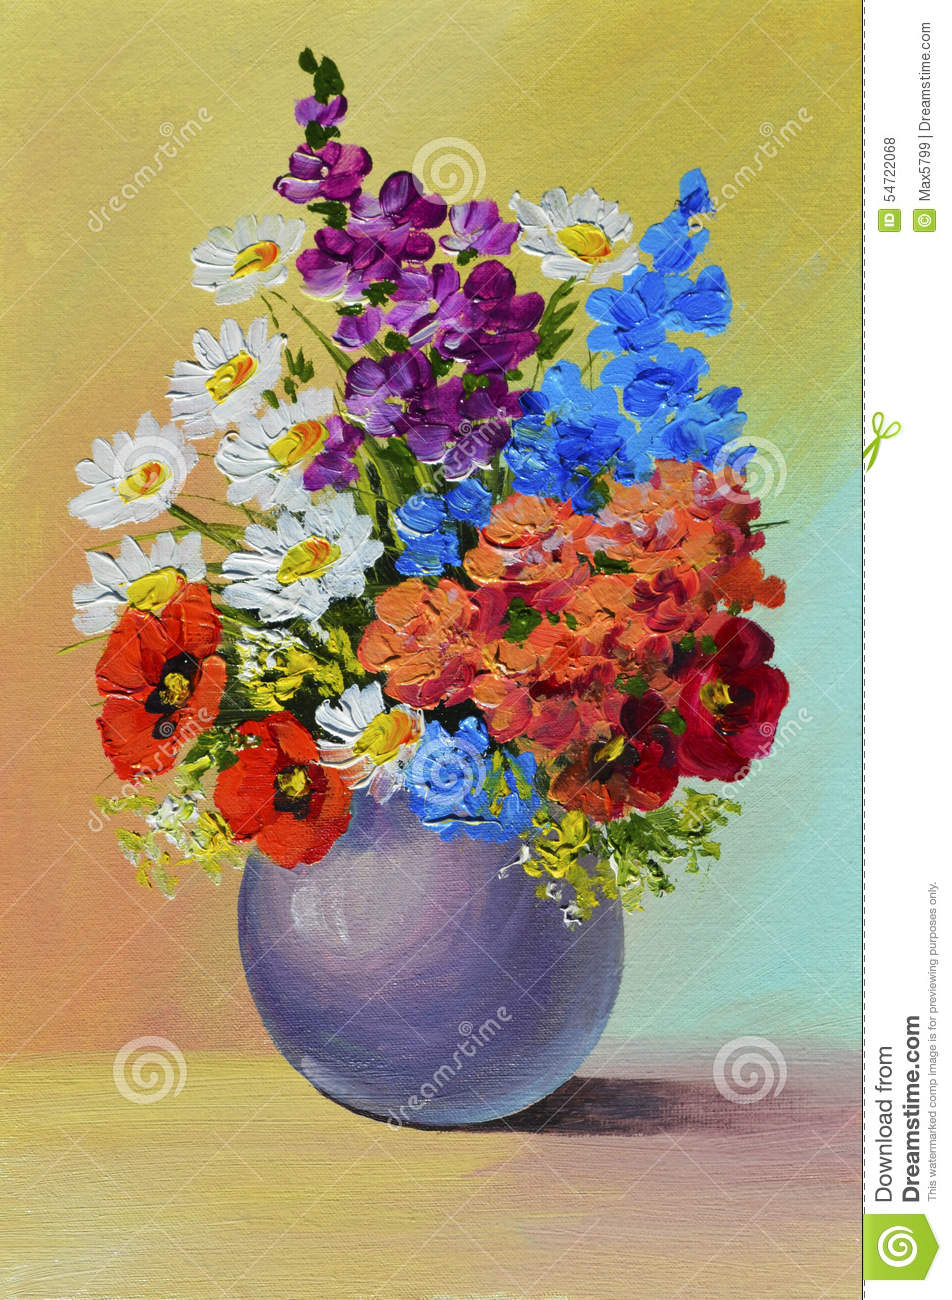 Oil Painting - Still Life, A Bouquet Of Flowers Stock Illustration ...